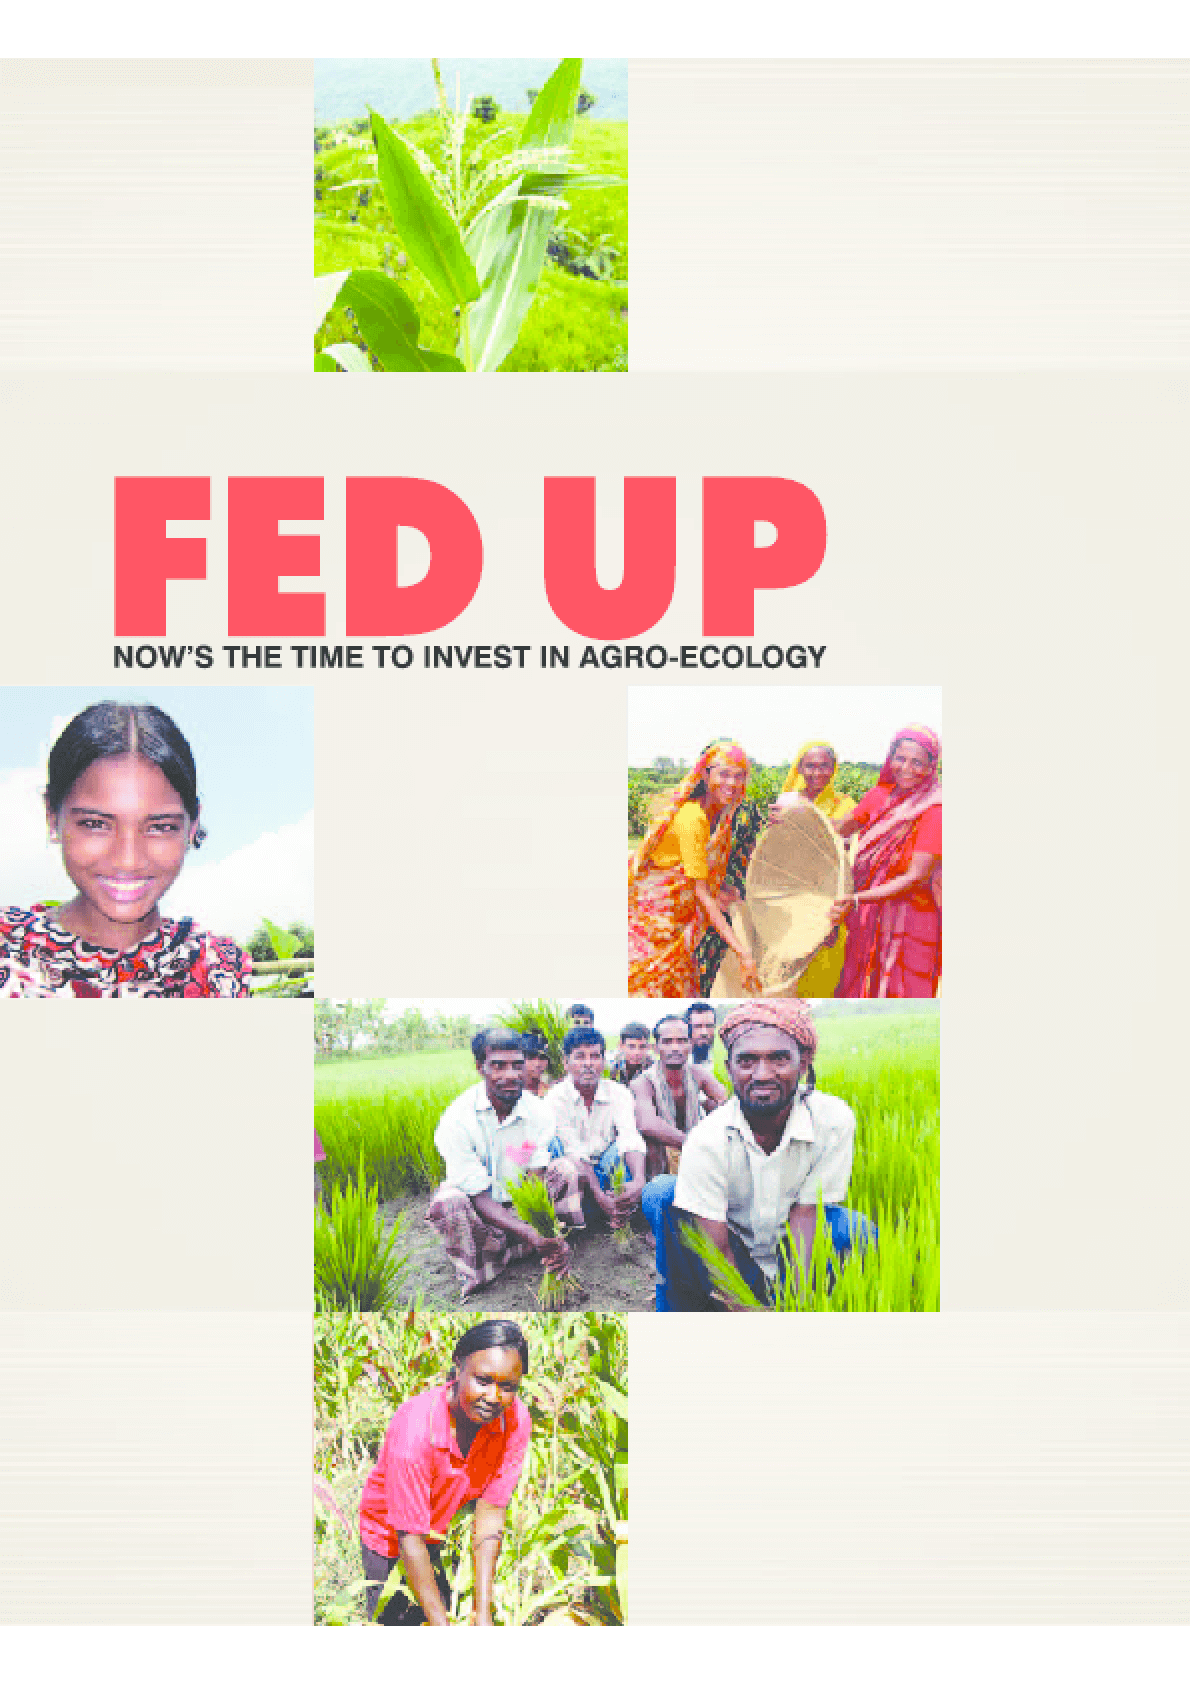 Fed Up: Now's the Time to Invest in Agro-Ecology